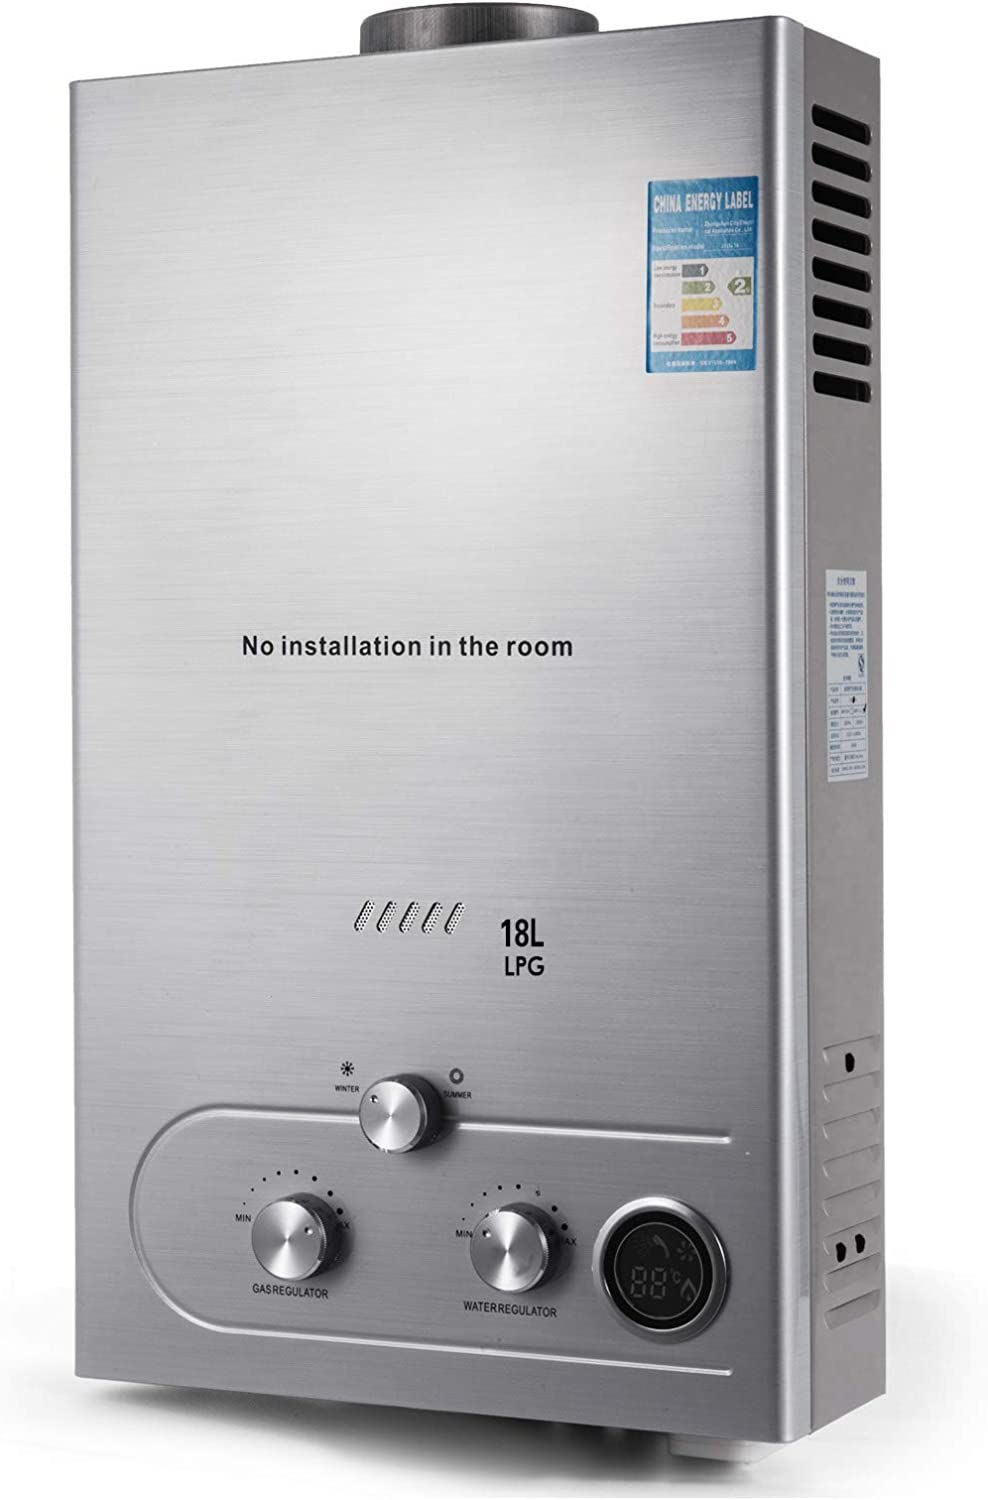 Happybuy 18L Propane Water Heater 4.8GPM Tankless Propane Water Heater Fit for Home outdoor RV Use